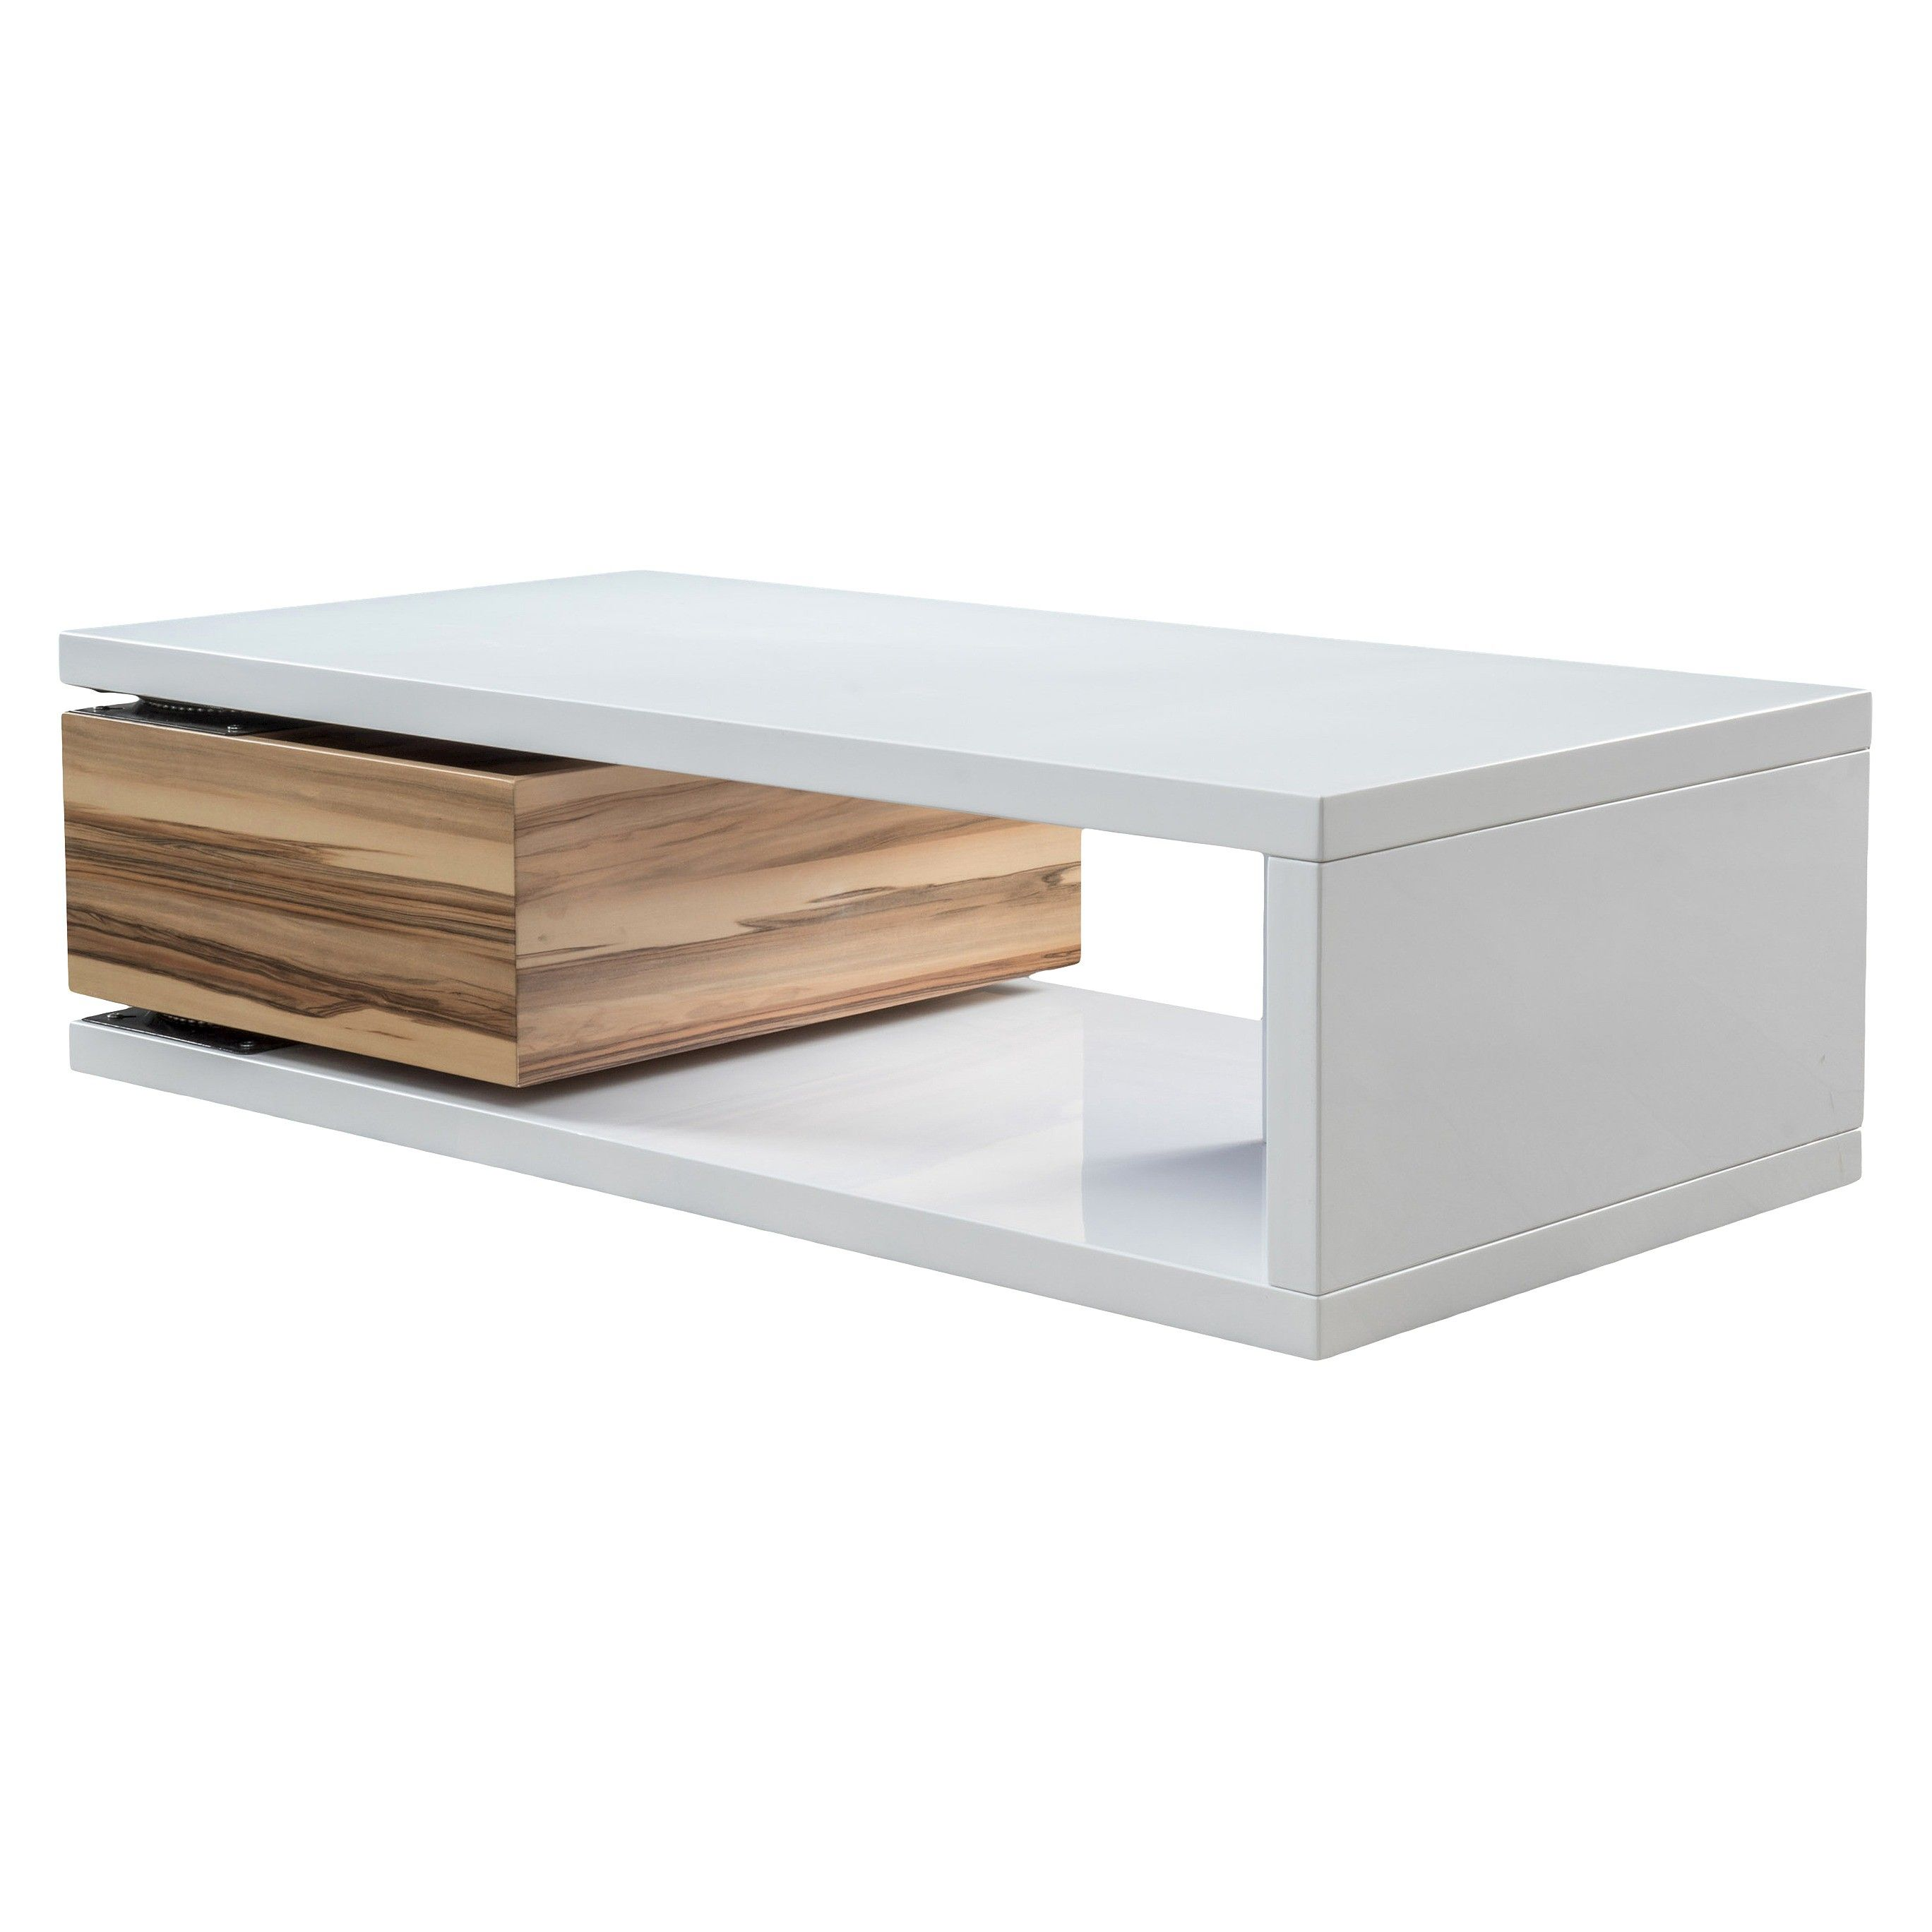 Christopher Knight Home Coffee Table White Coffee Table Home Coffee Tables Coffee Table White [ 2736 x 2736 Pixel ]